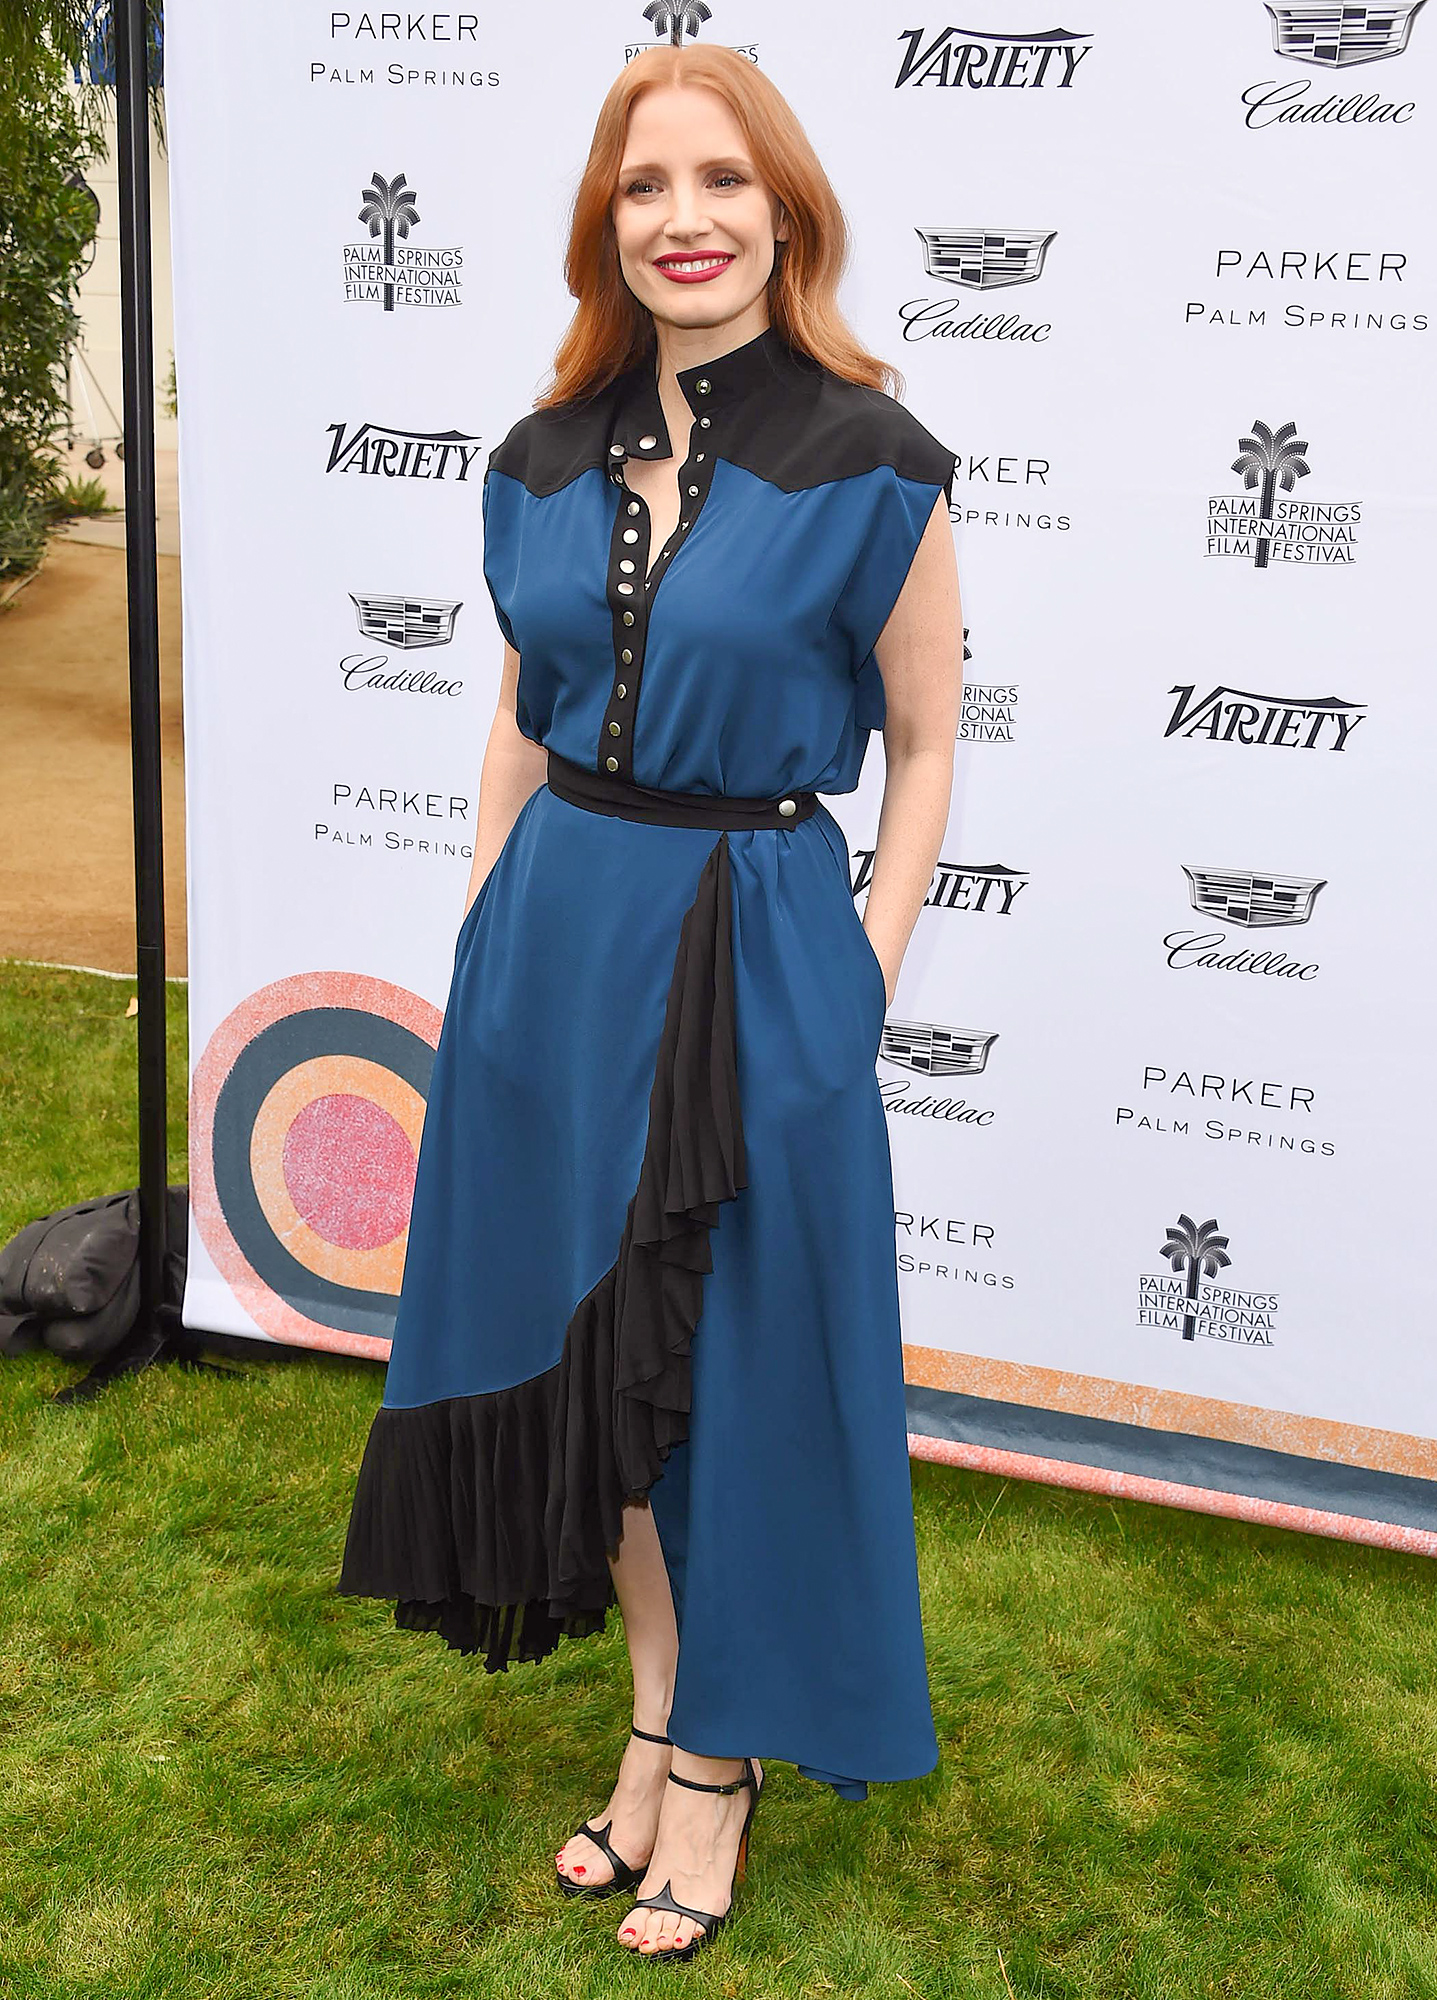 Variety Luncheon During the 29th Palm Springs International Film Festival Awards